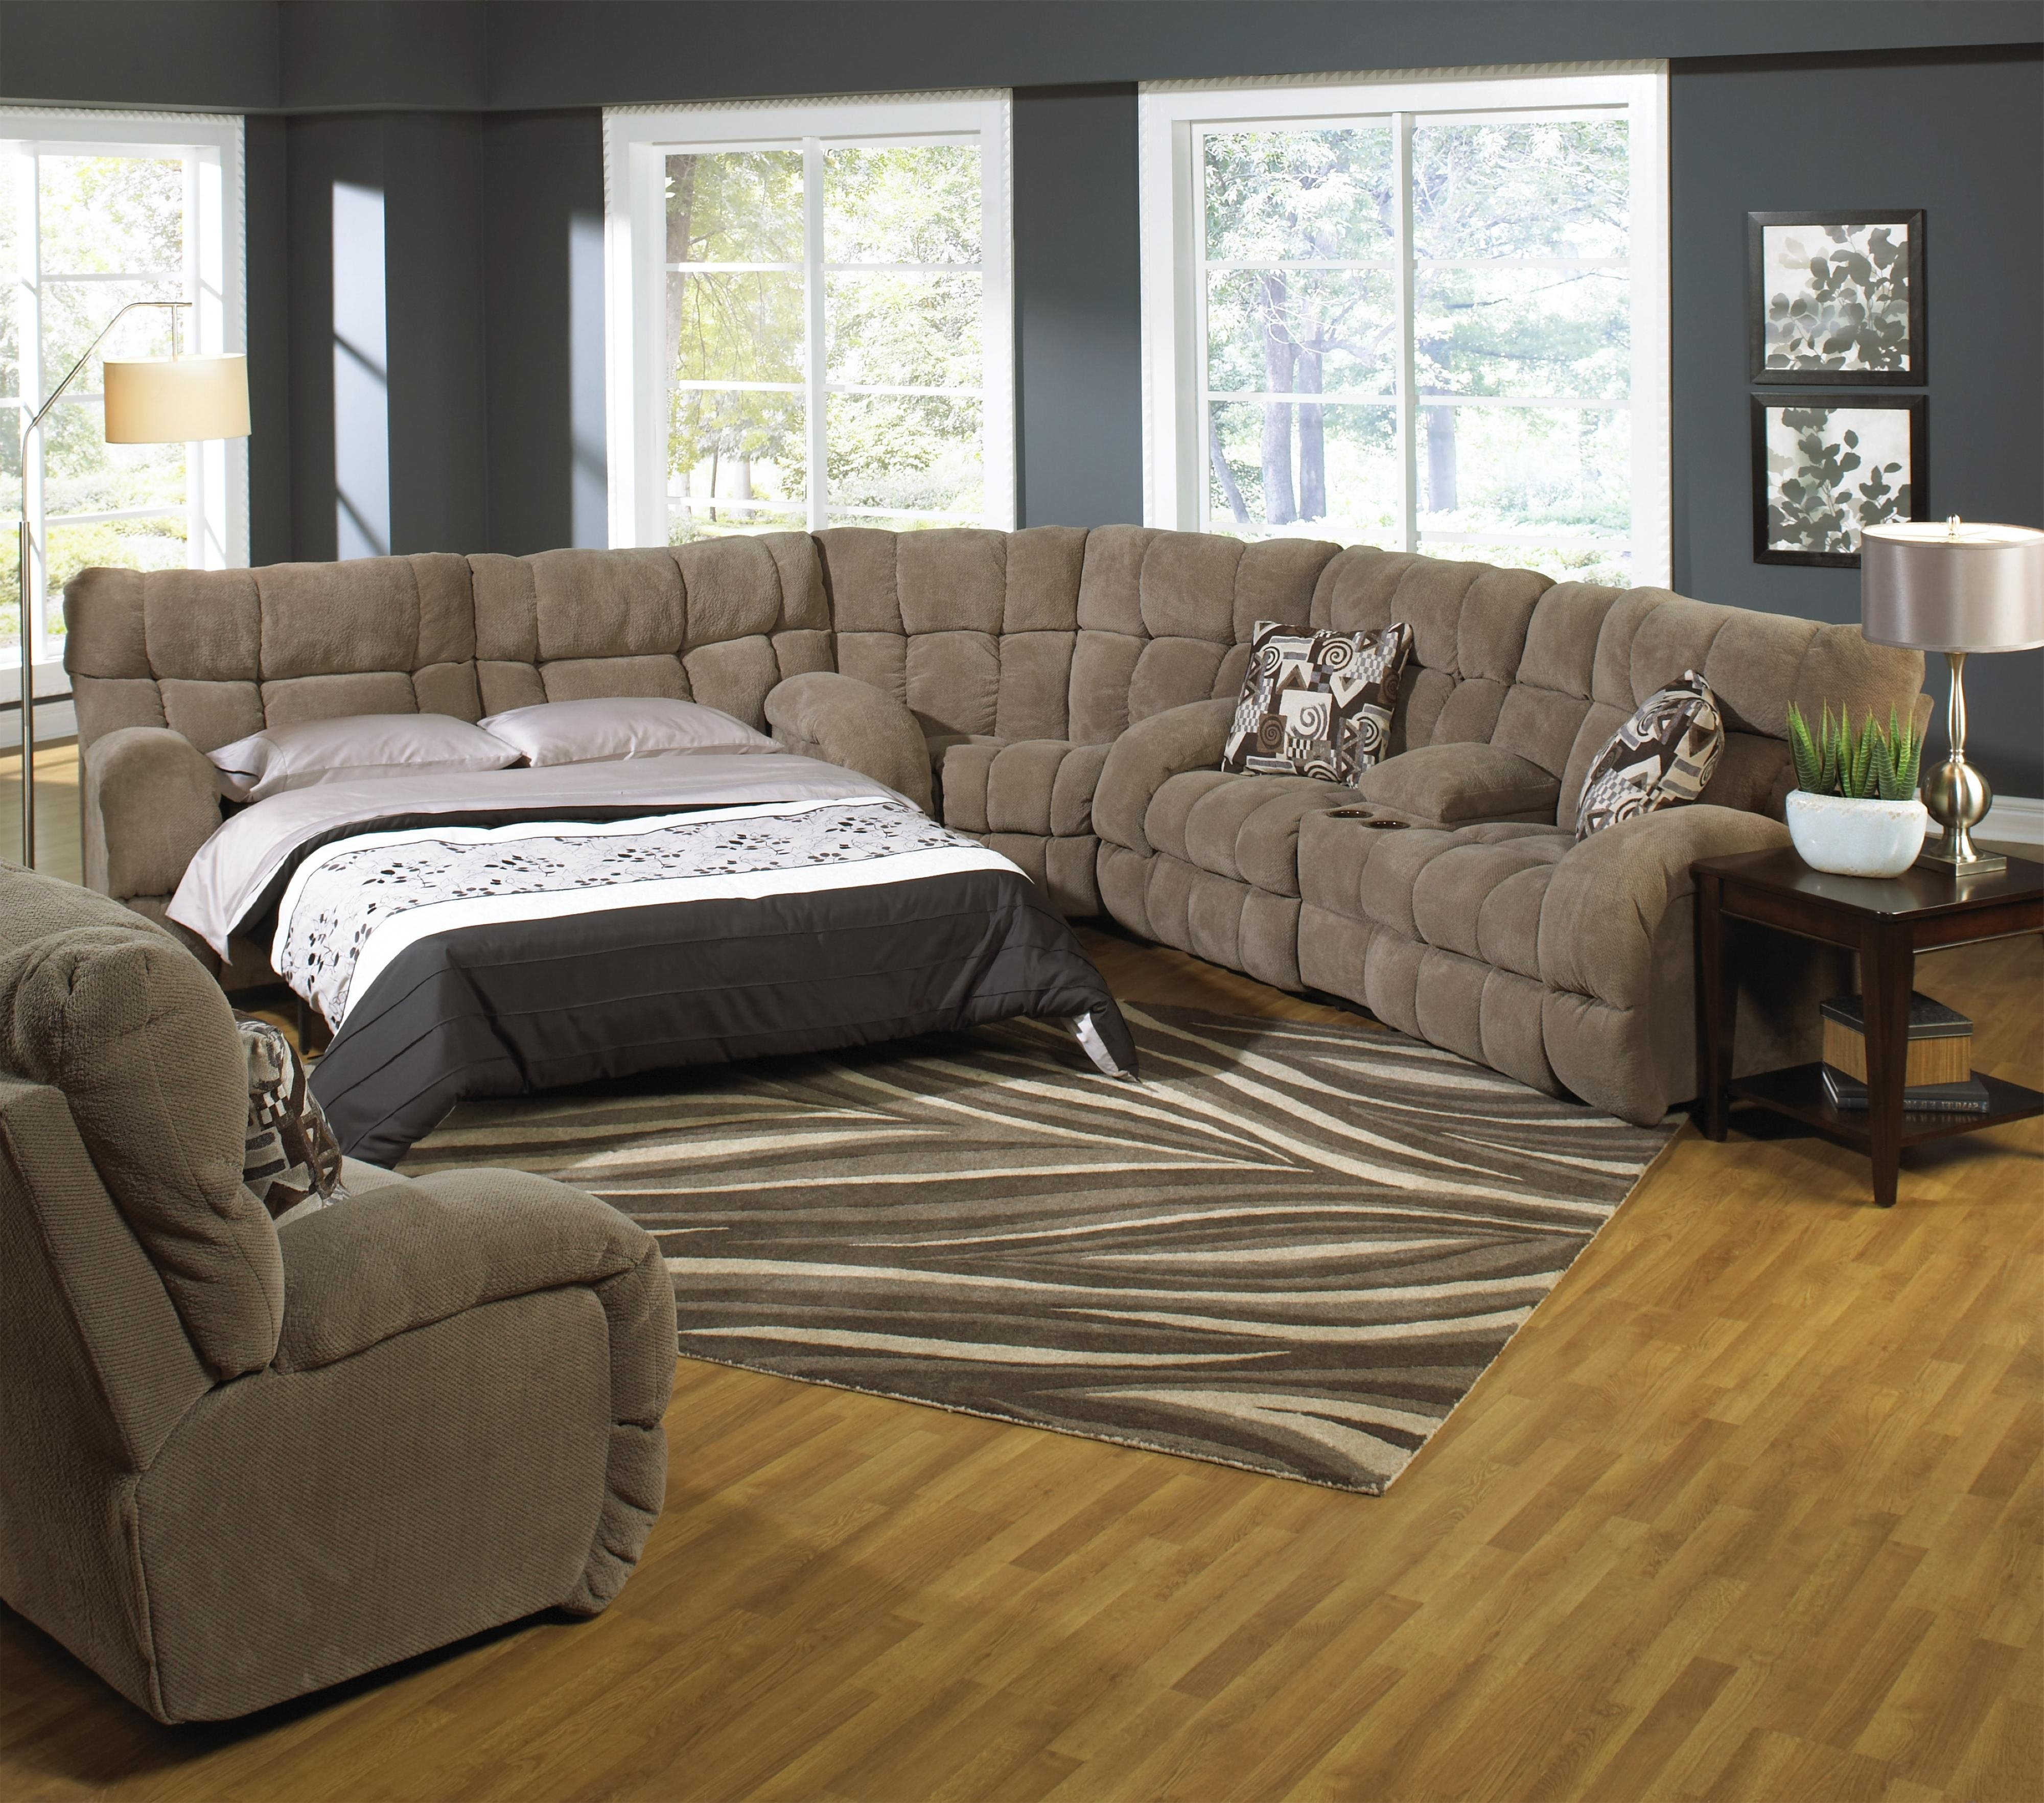 Current L Shaped Sectional Sleeper Sofas For L Shaped Sectional Sleeper Sofa – Tourdecarroll (View 5 of 15)